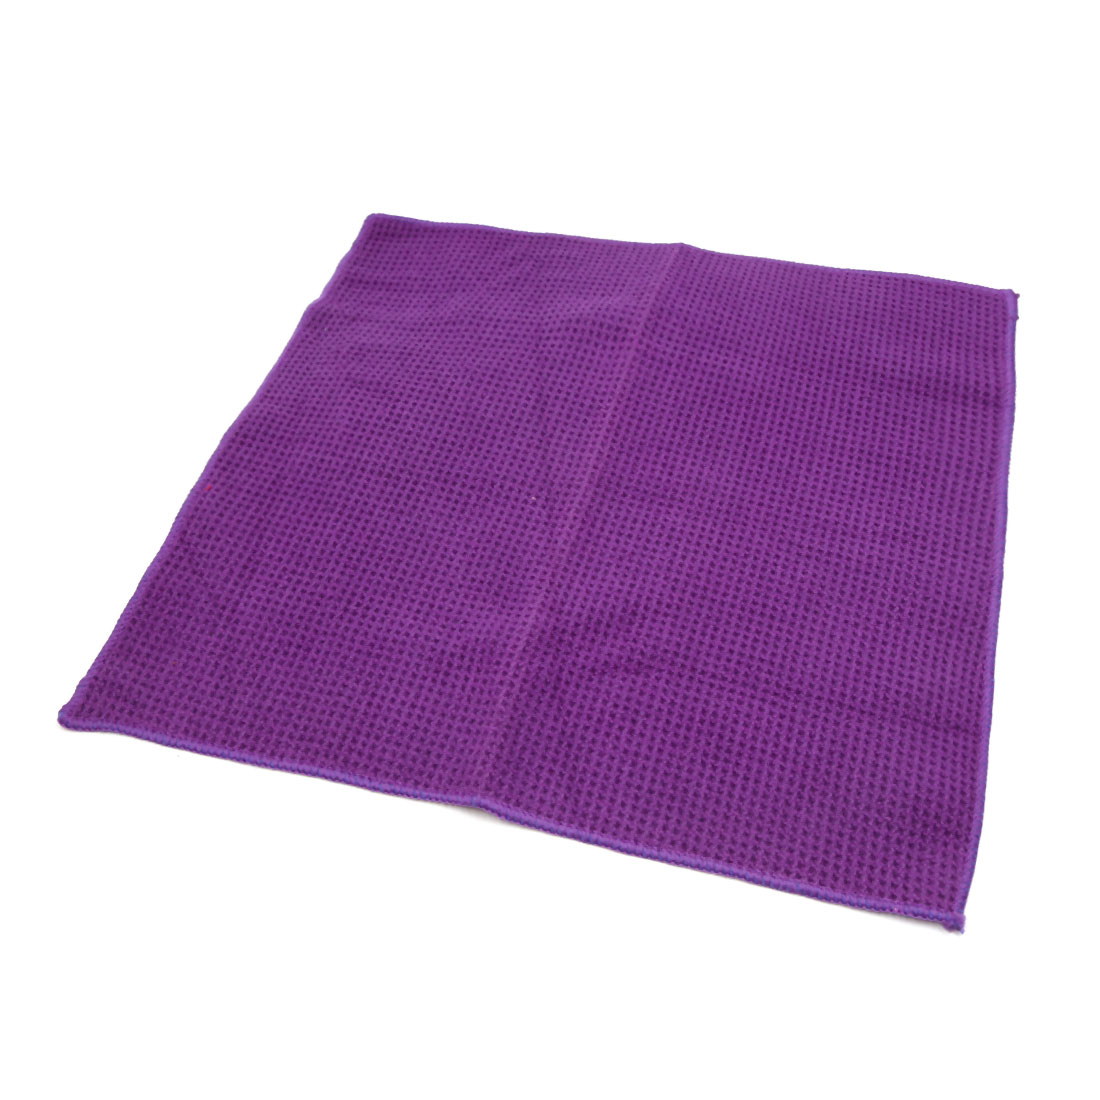 Purple Soft Home Auto Car Care Dry Washing Polishing Duster Cloth Towels